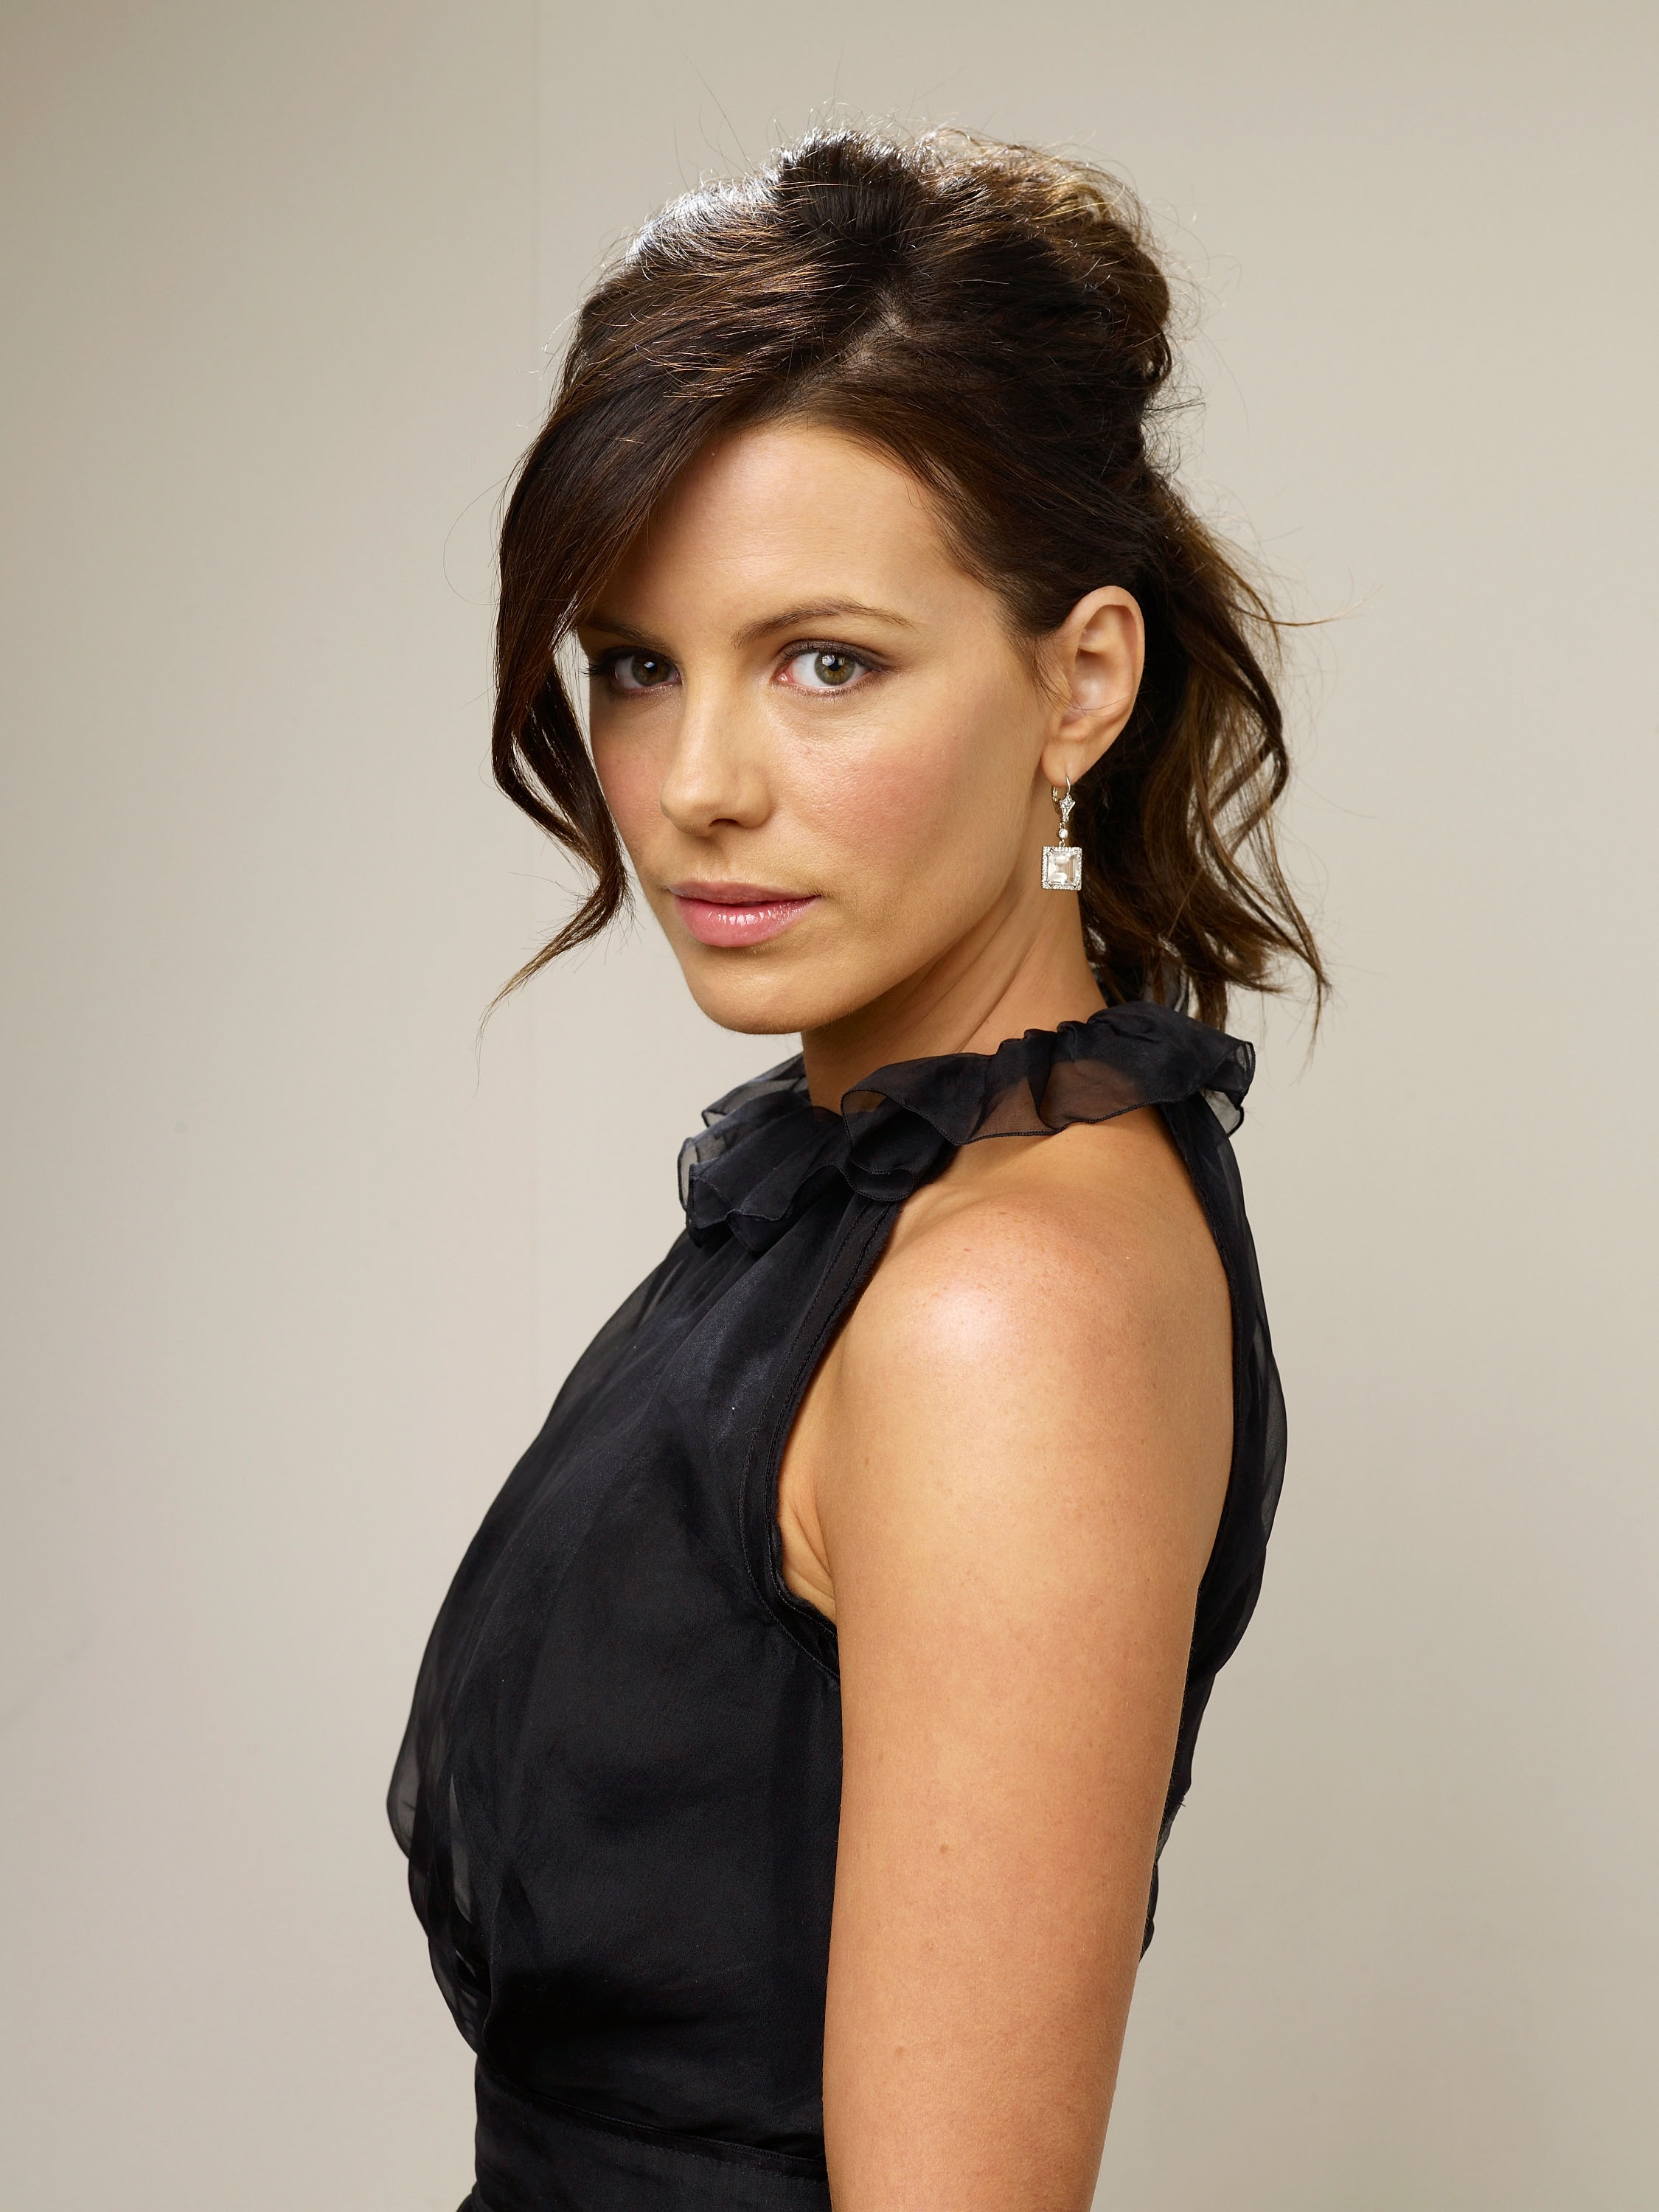 83905_Celebutopia-Kate_Beckinsale-Nothing_But_The_Truth_TIFF_2008_Portrait_Session-04_122_586lo.jpg